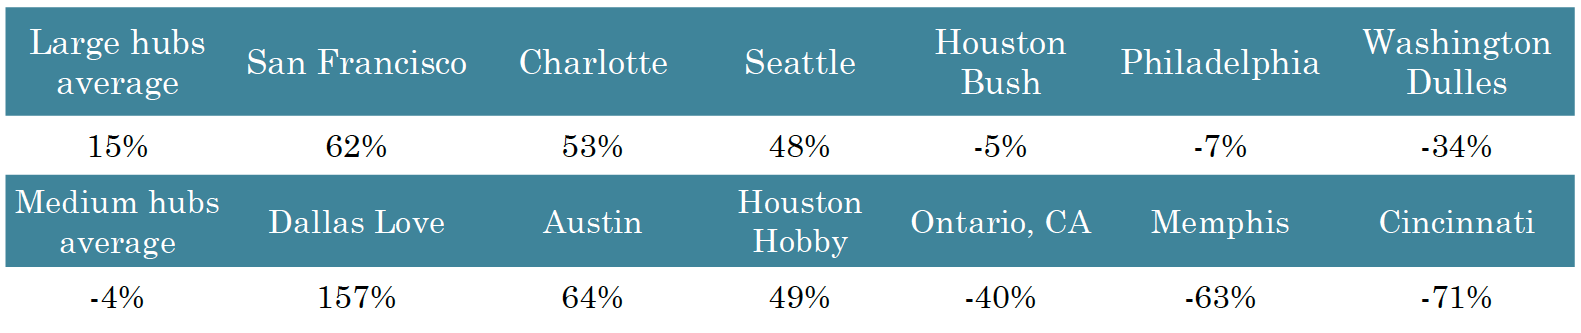 How has air travel in specific metropolitan areas changed in